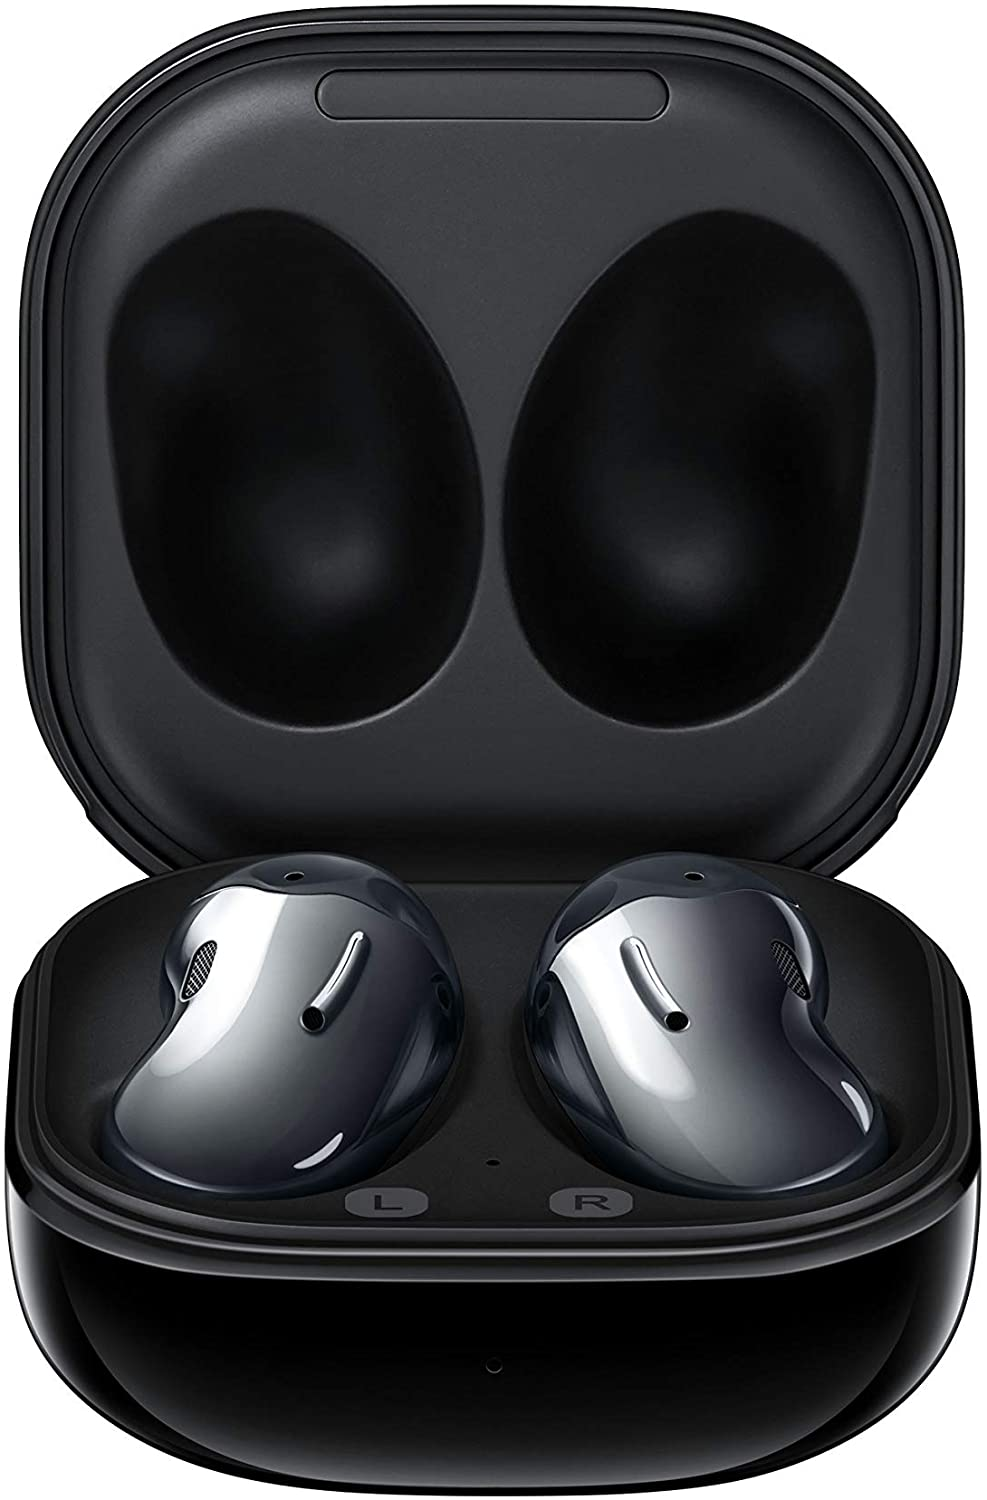 Samsung Galaxy Bud Live Earbuds, most comfortable earbuds